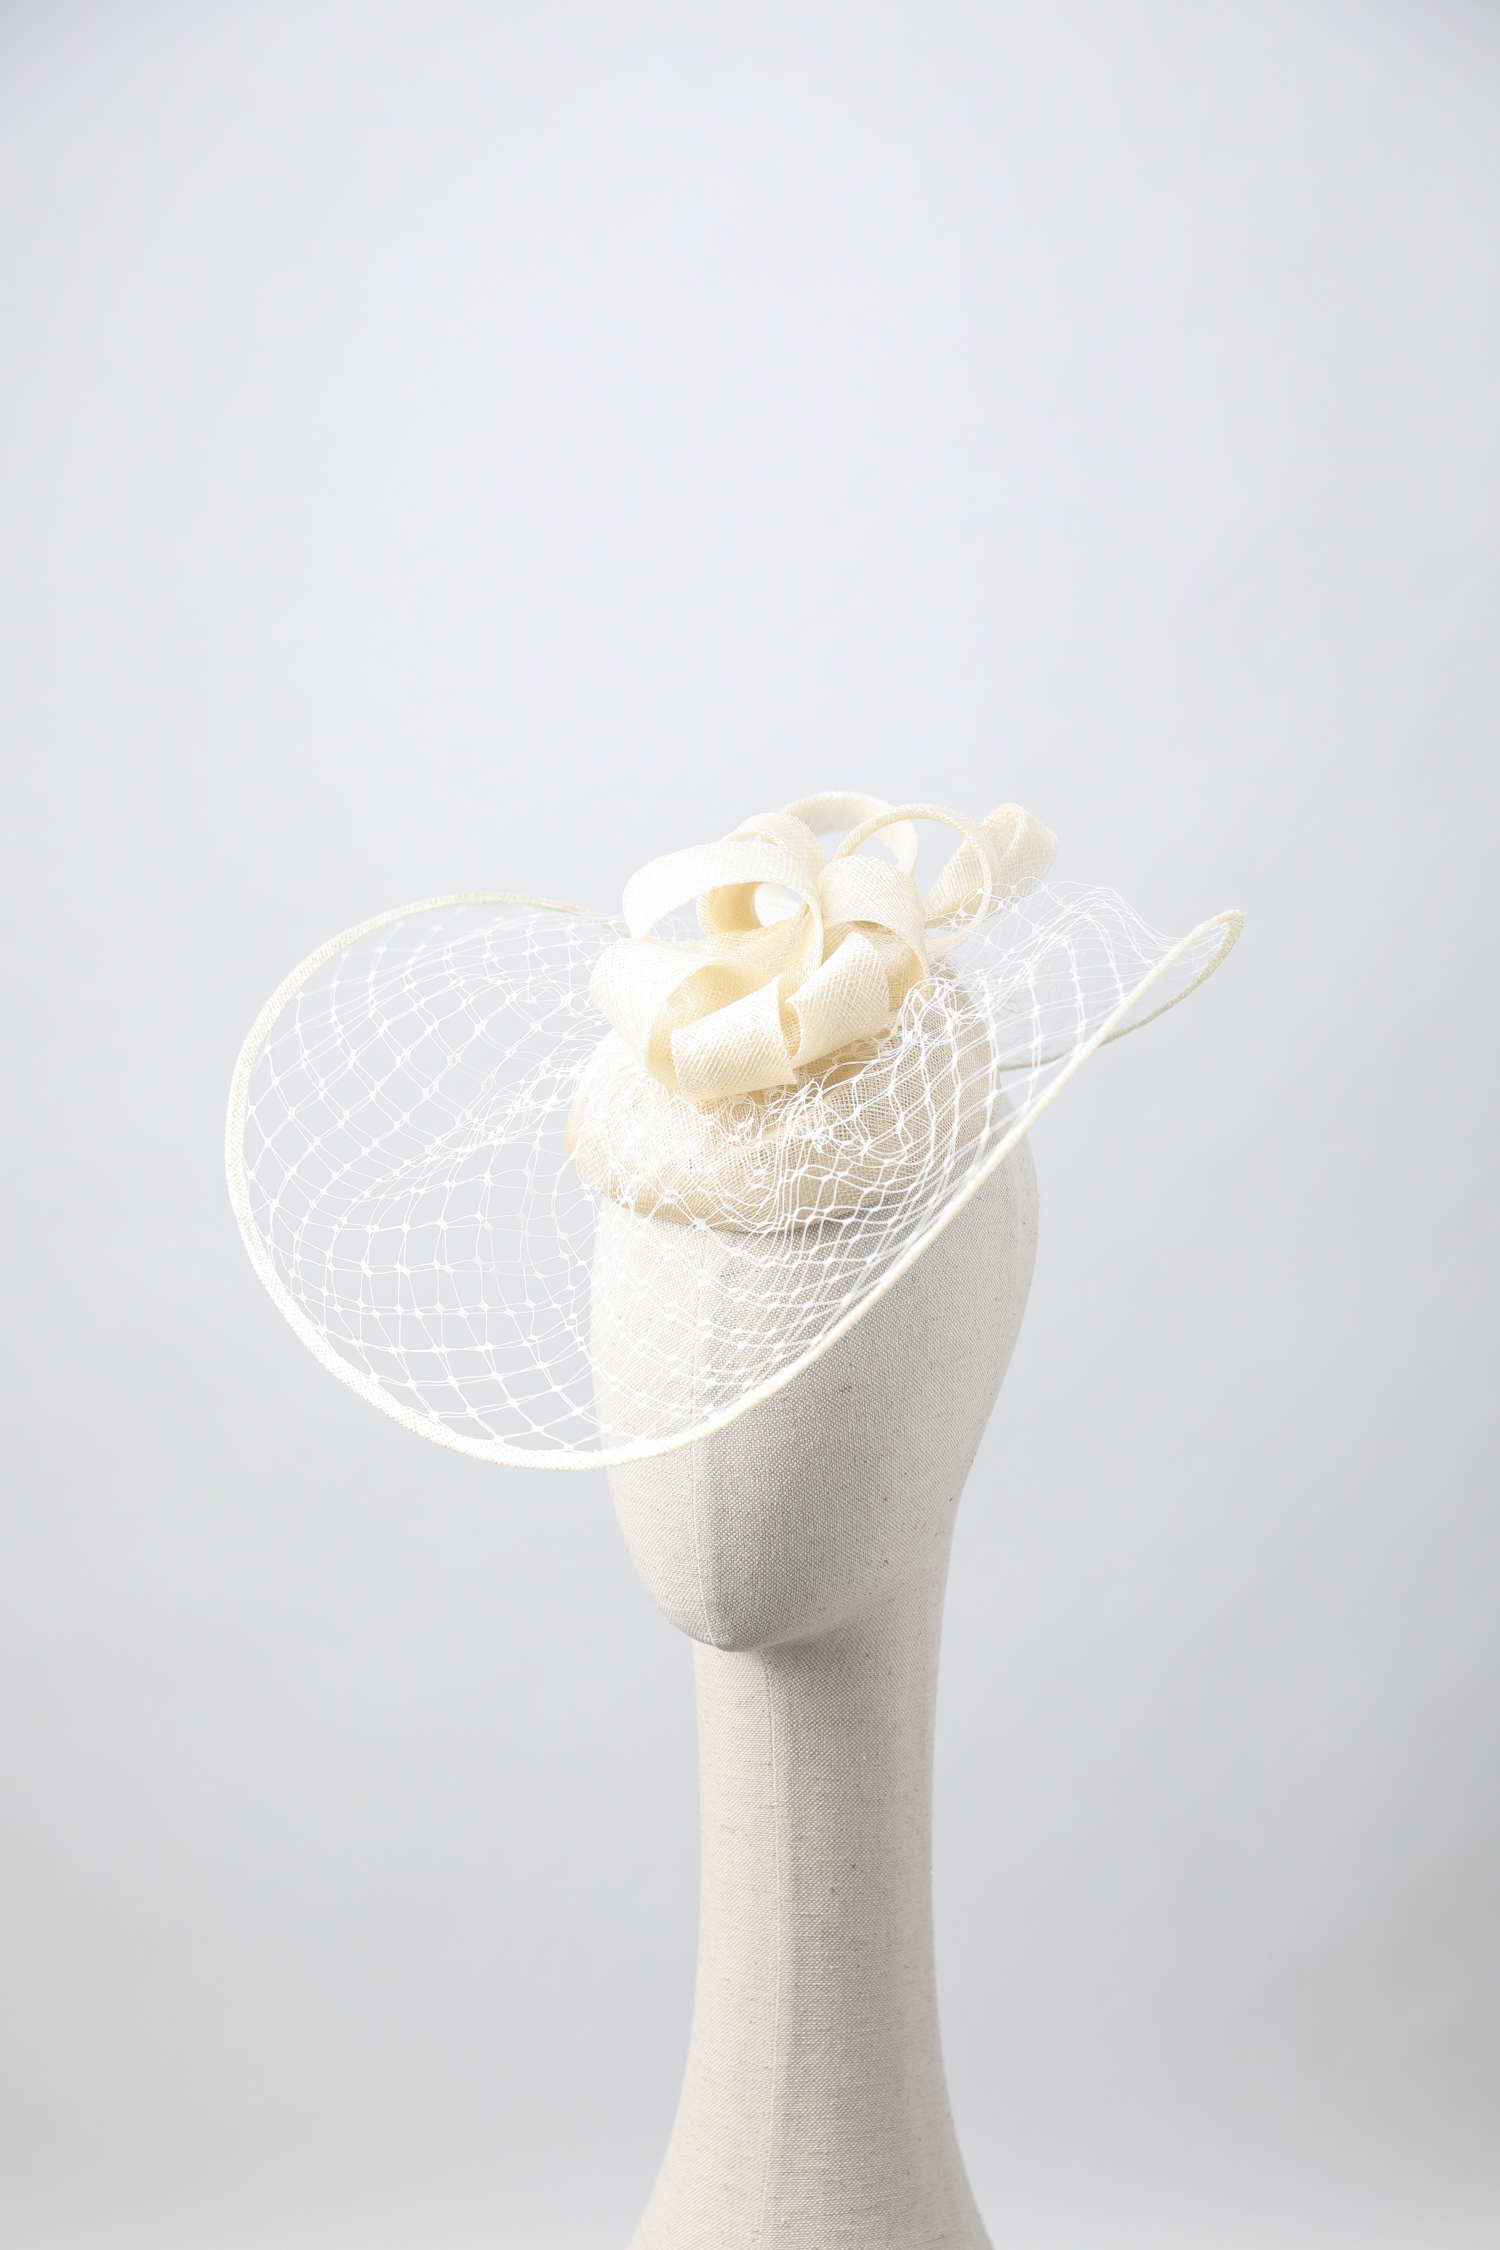 Copy of Jaycow Millinery by Jay Cheng Sample Stock 2019 (43).jpg